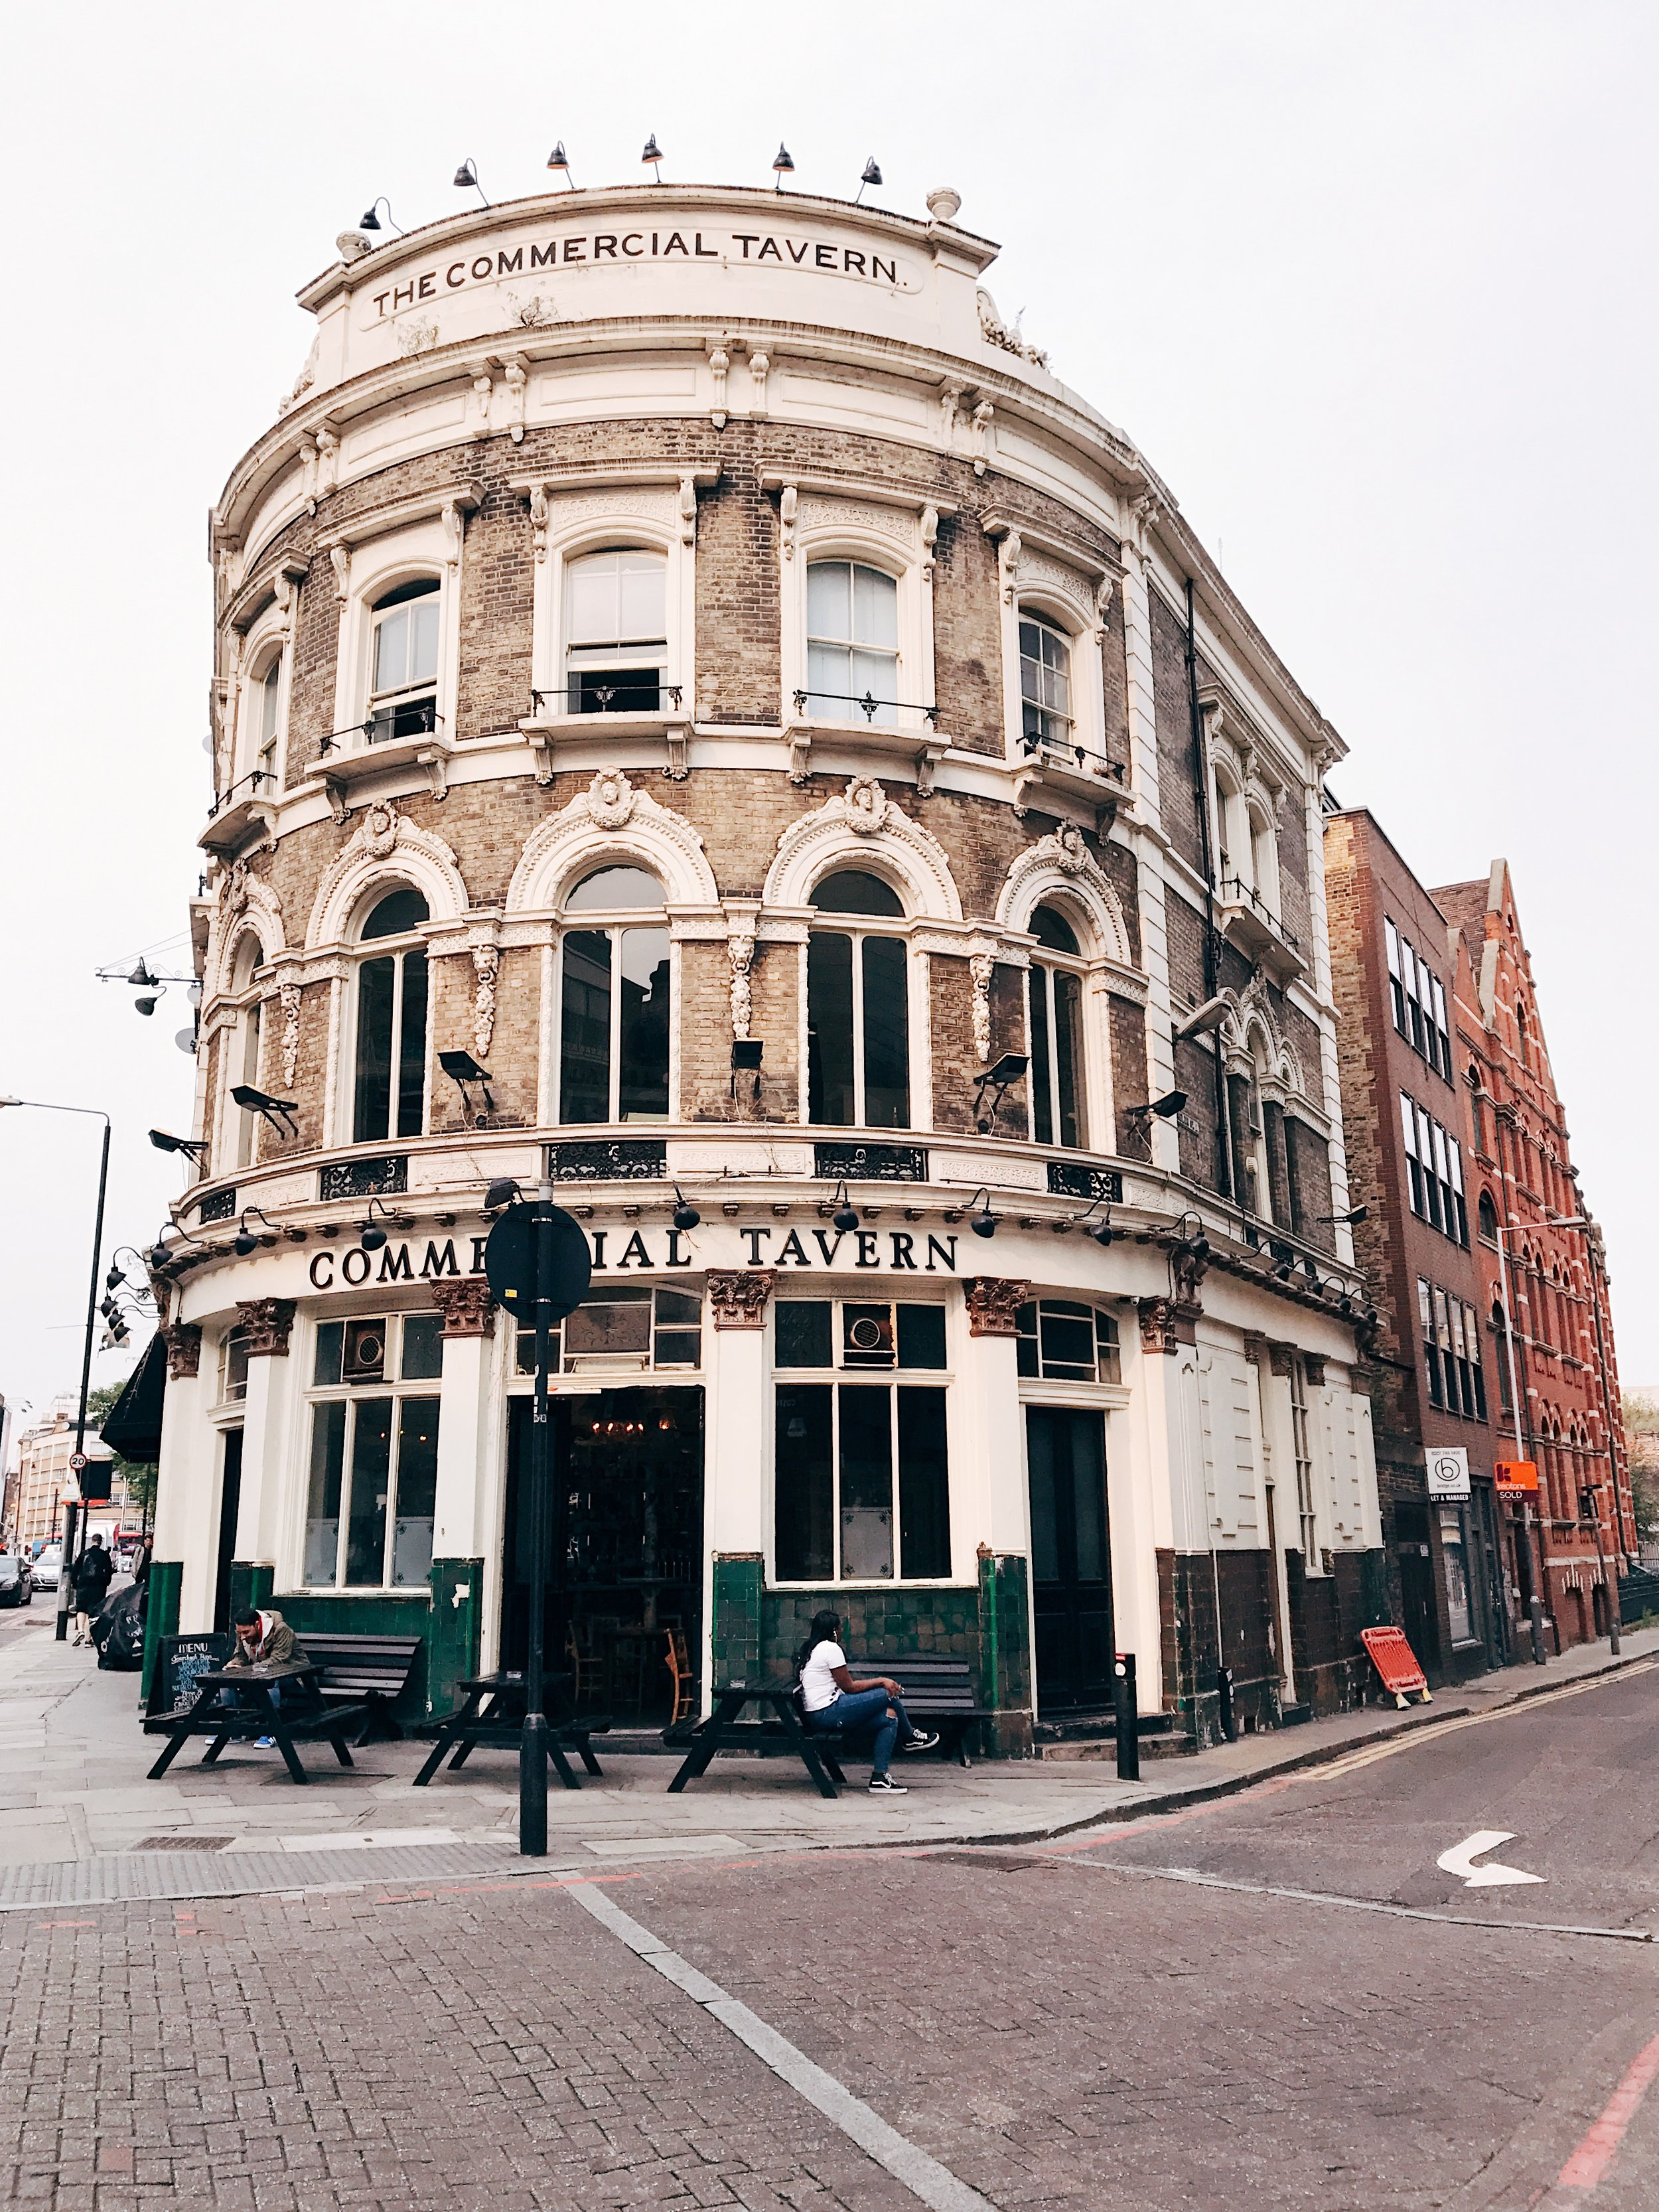 Image: Reasons to Visit London - Many Images to Inspire You to Visit London - Shoreditch